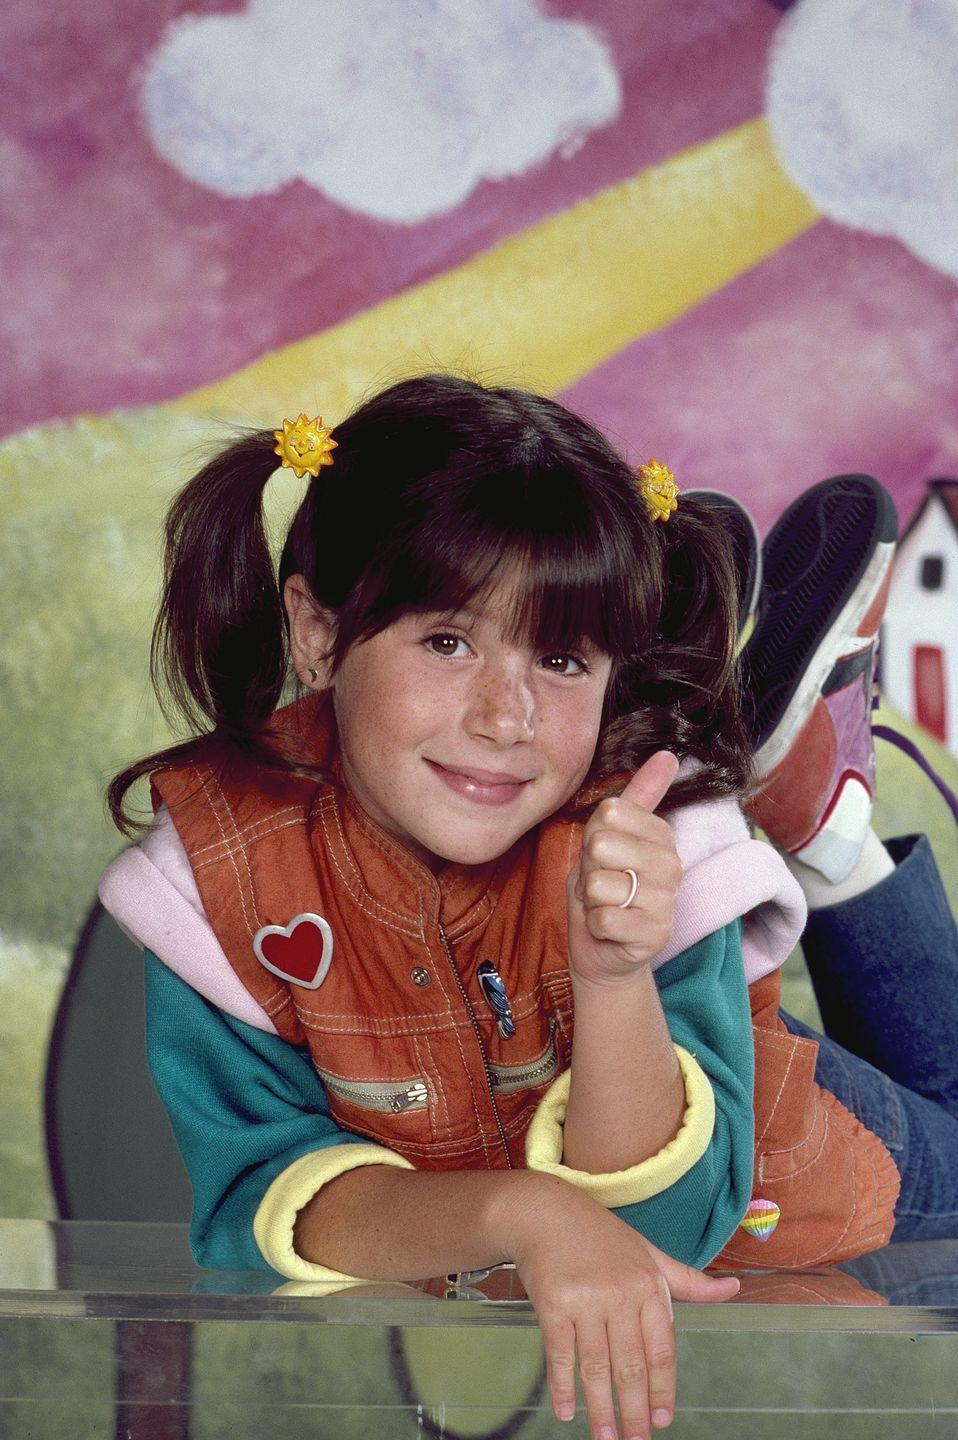 <p>When she was eight-years-old, Soleil Moon Frye was cast as <em>Punky Brewster, </em>a role that put her on the map as a child star. In 1989, she went on to host a weekly talk show called <em>Girl Talk, </em>based on the popular board game.</p>